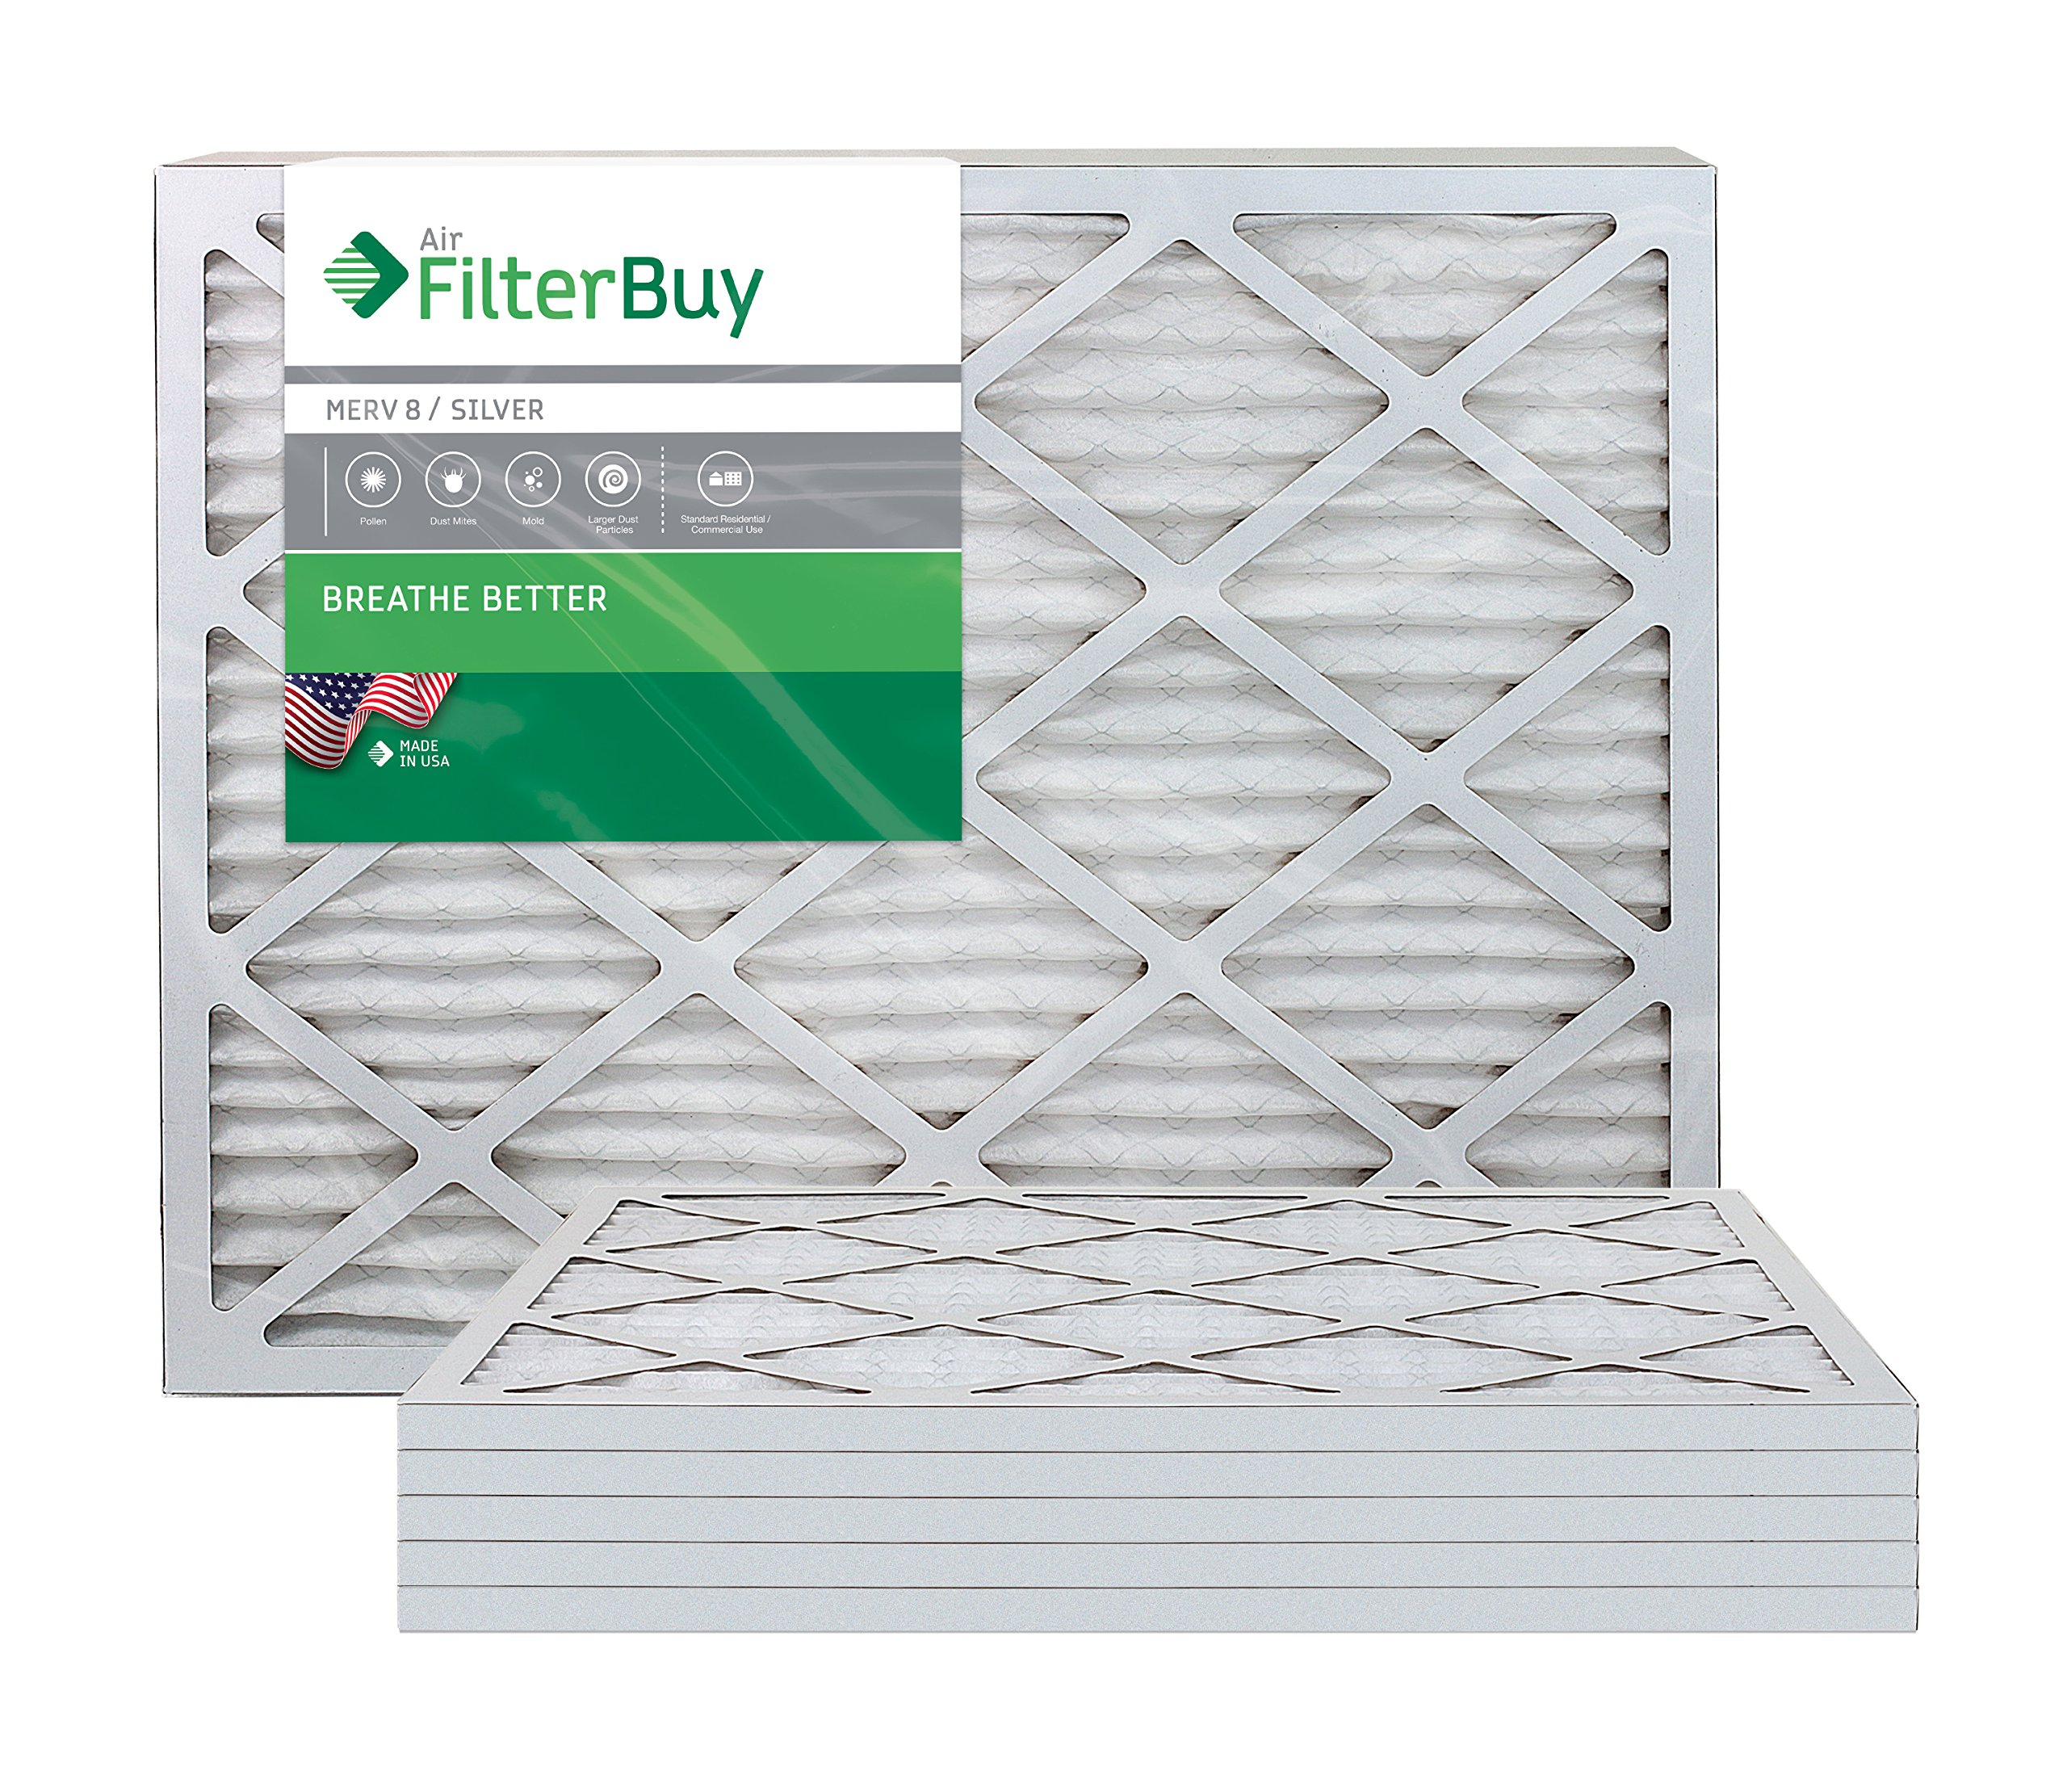 FilterBuy 20x30x1 MERV 8 Pleated AC Furnace Air Filter, (Pack of 6 Filters), 20x30x1 - Silver by FilterBuy